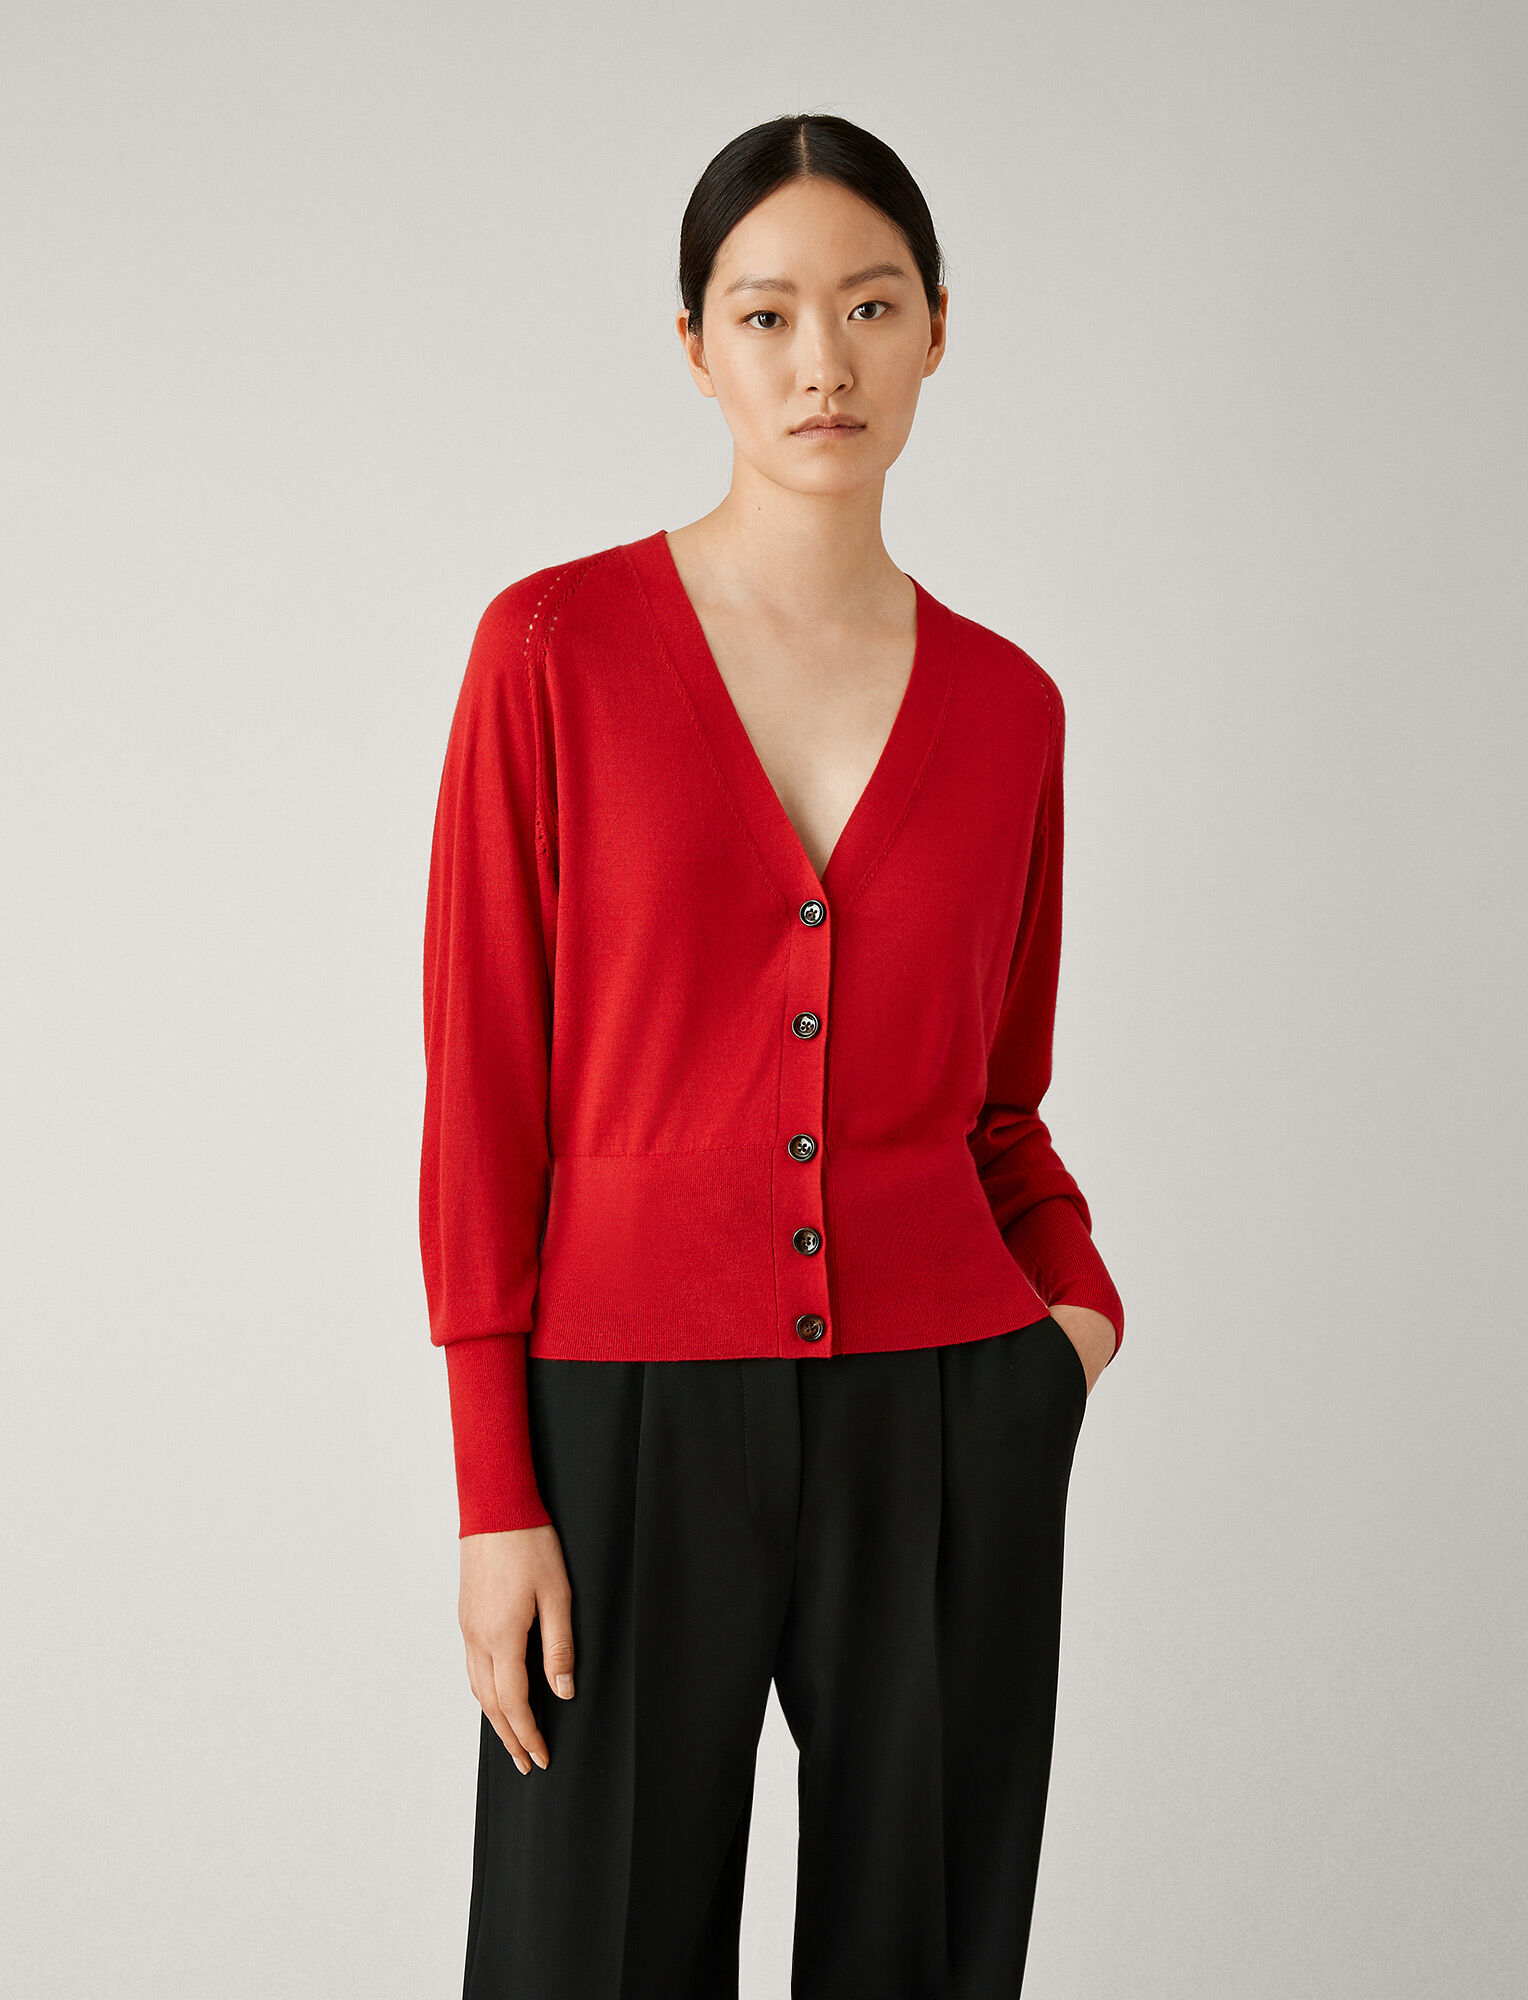 Joseph, Silk Merinos Knit Cardigan, in RUBY